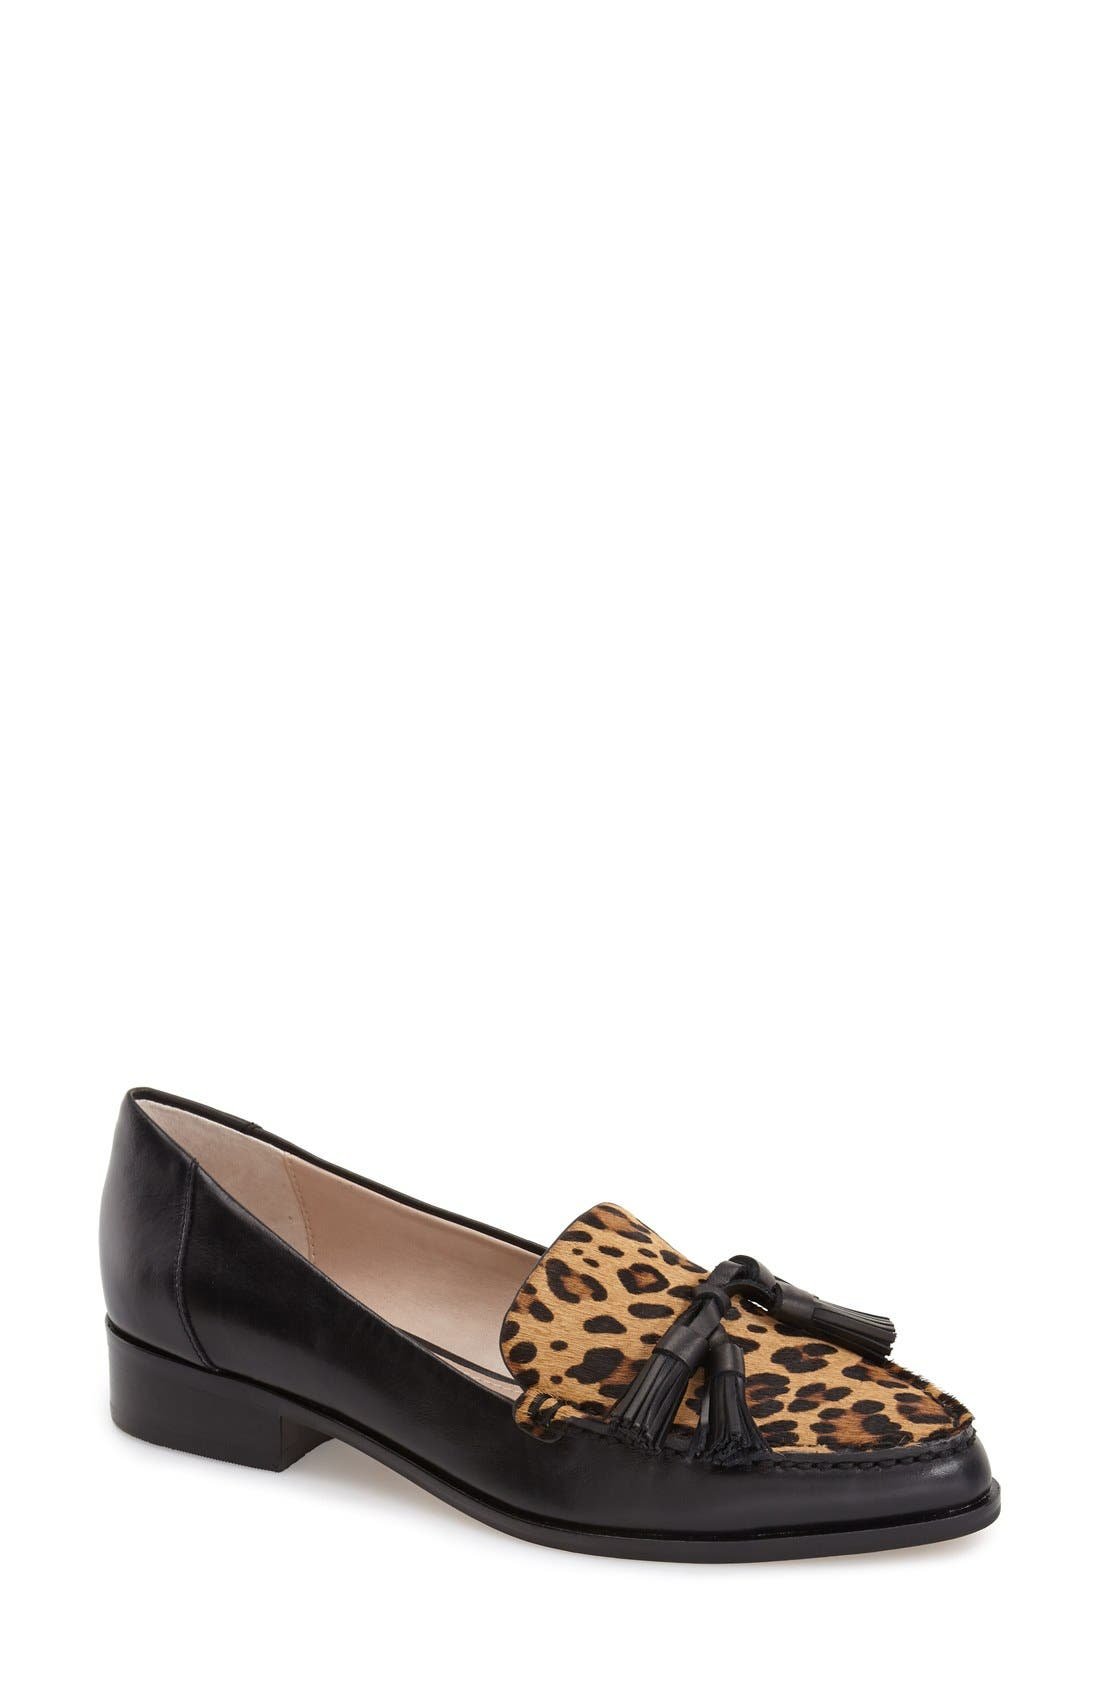 Alternate Image 1 Selected - French Connection 'Lonnie' Tassel Loafer (Women)